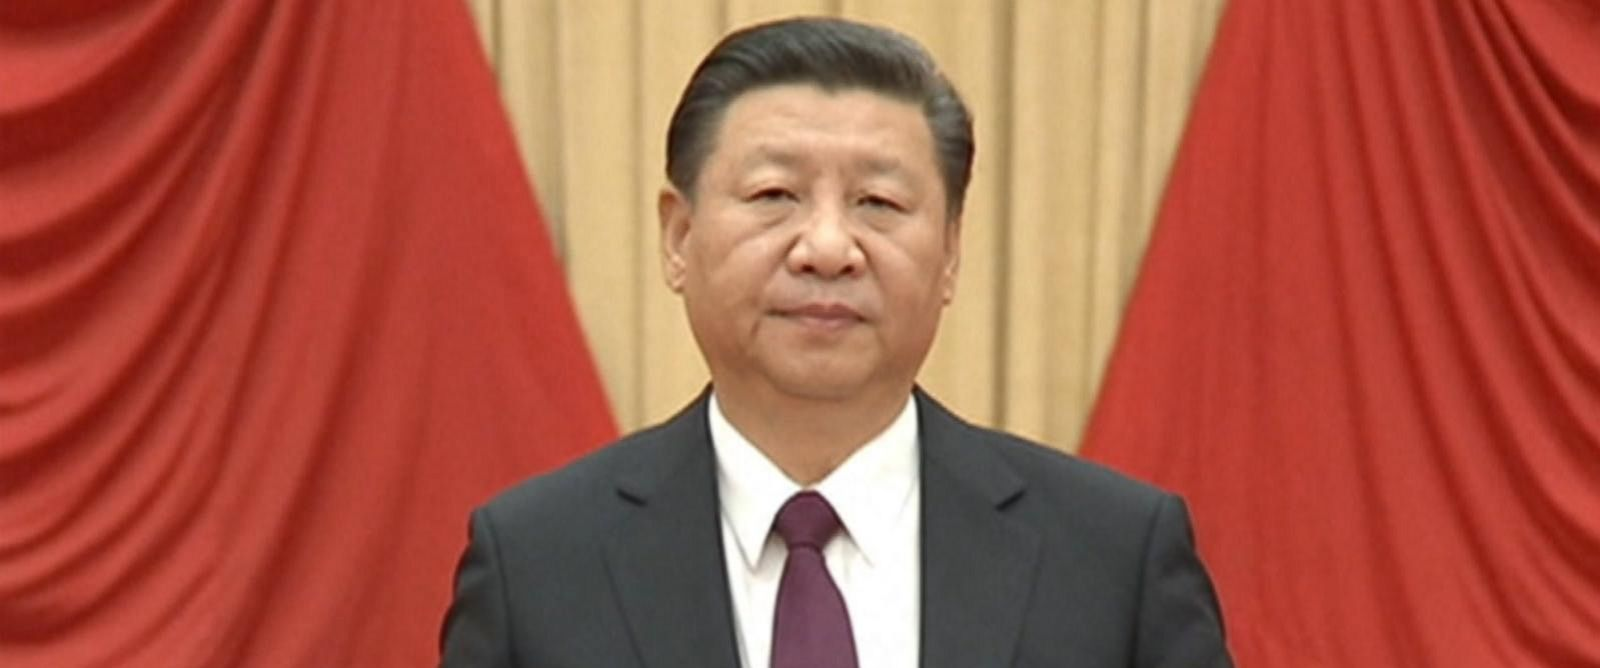 VIDEO: Xi Jinping: China's strongest leader in generations